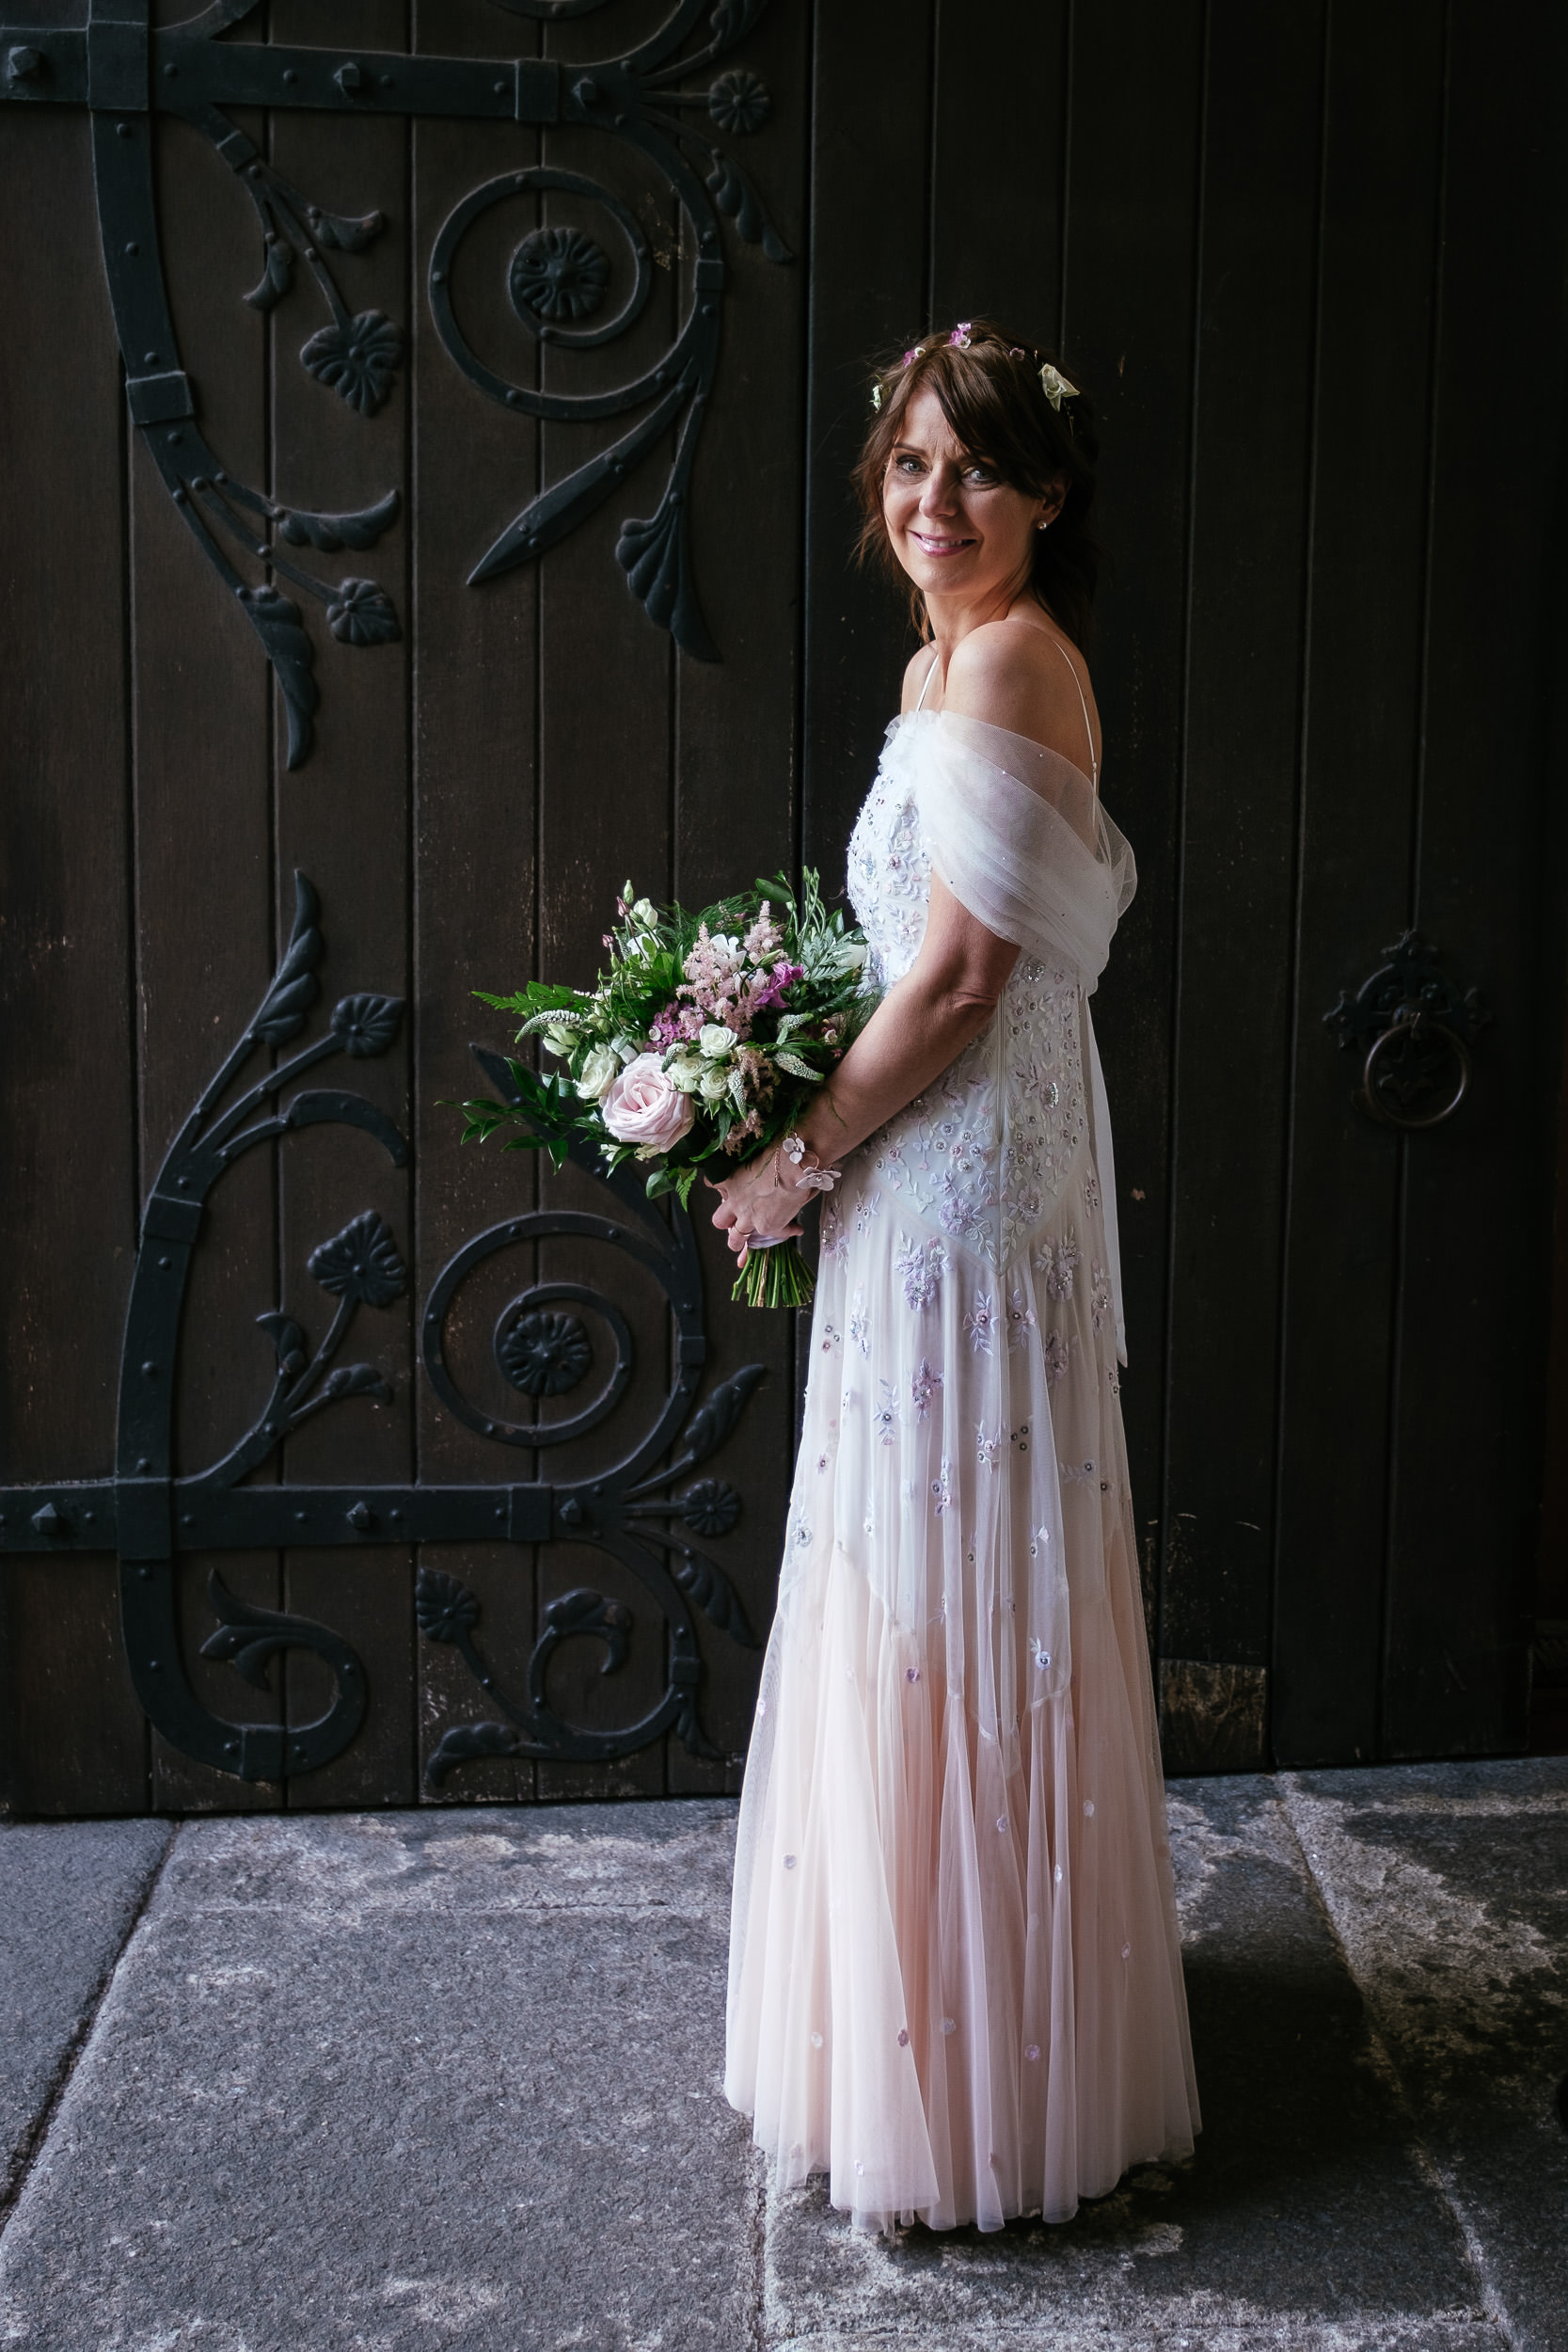 Dublin Unitarian Church Shelbourne Hotel Wedding Photographer 37